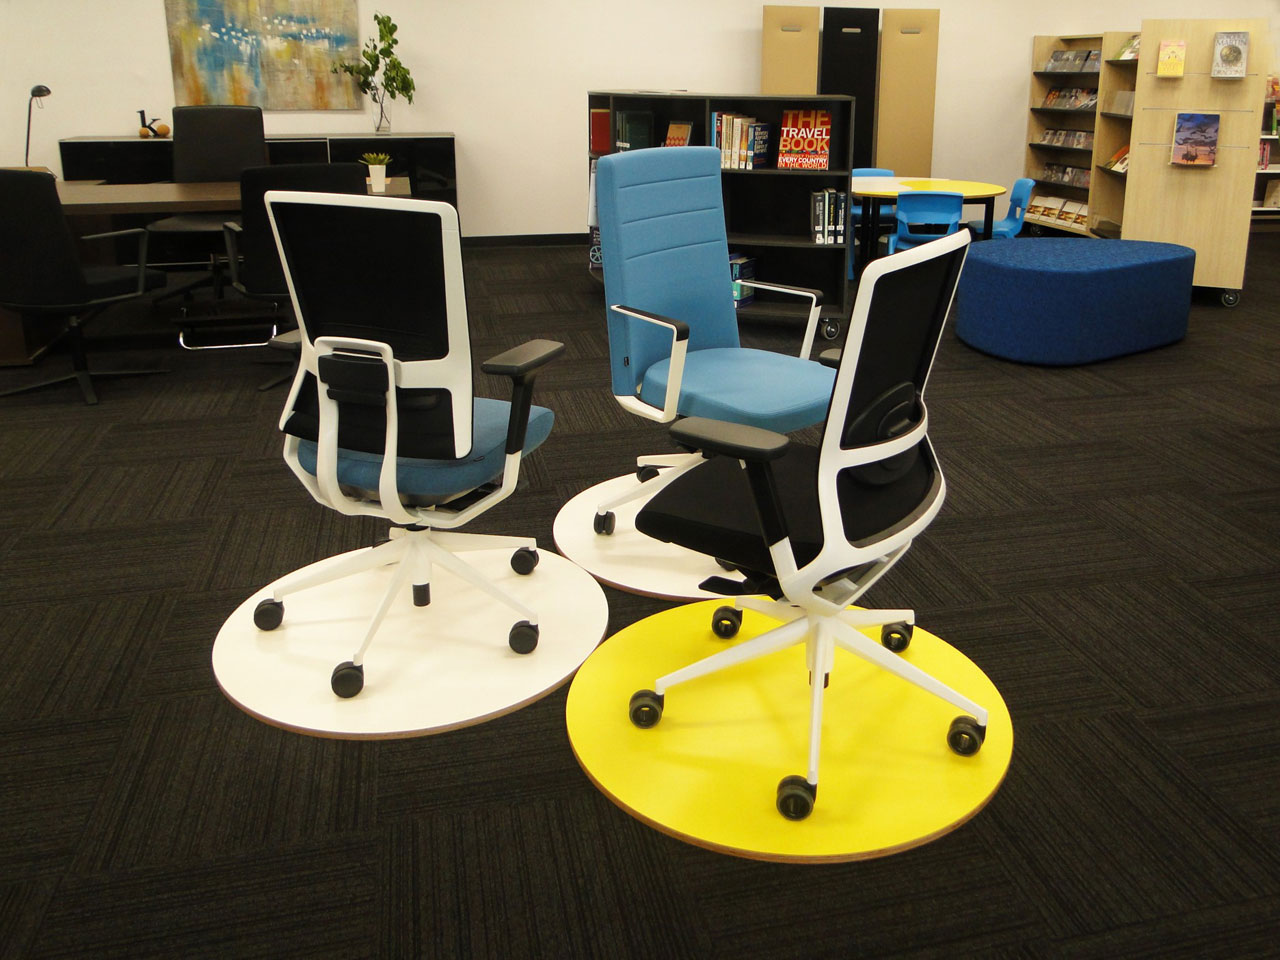 ... Resource Furniture, A New Partner Specialising In Offices, Libraries  And Education 6 ...